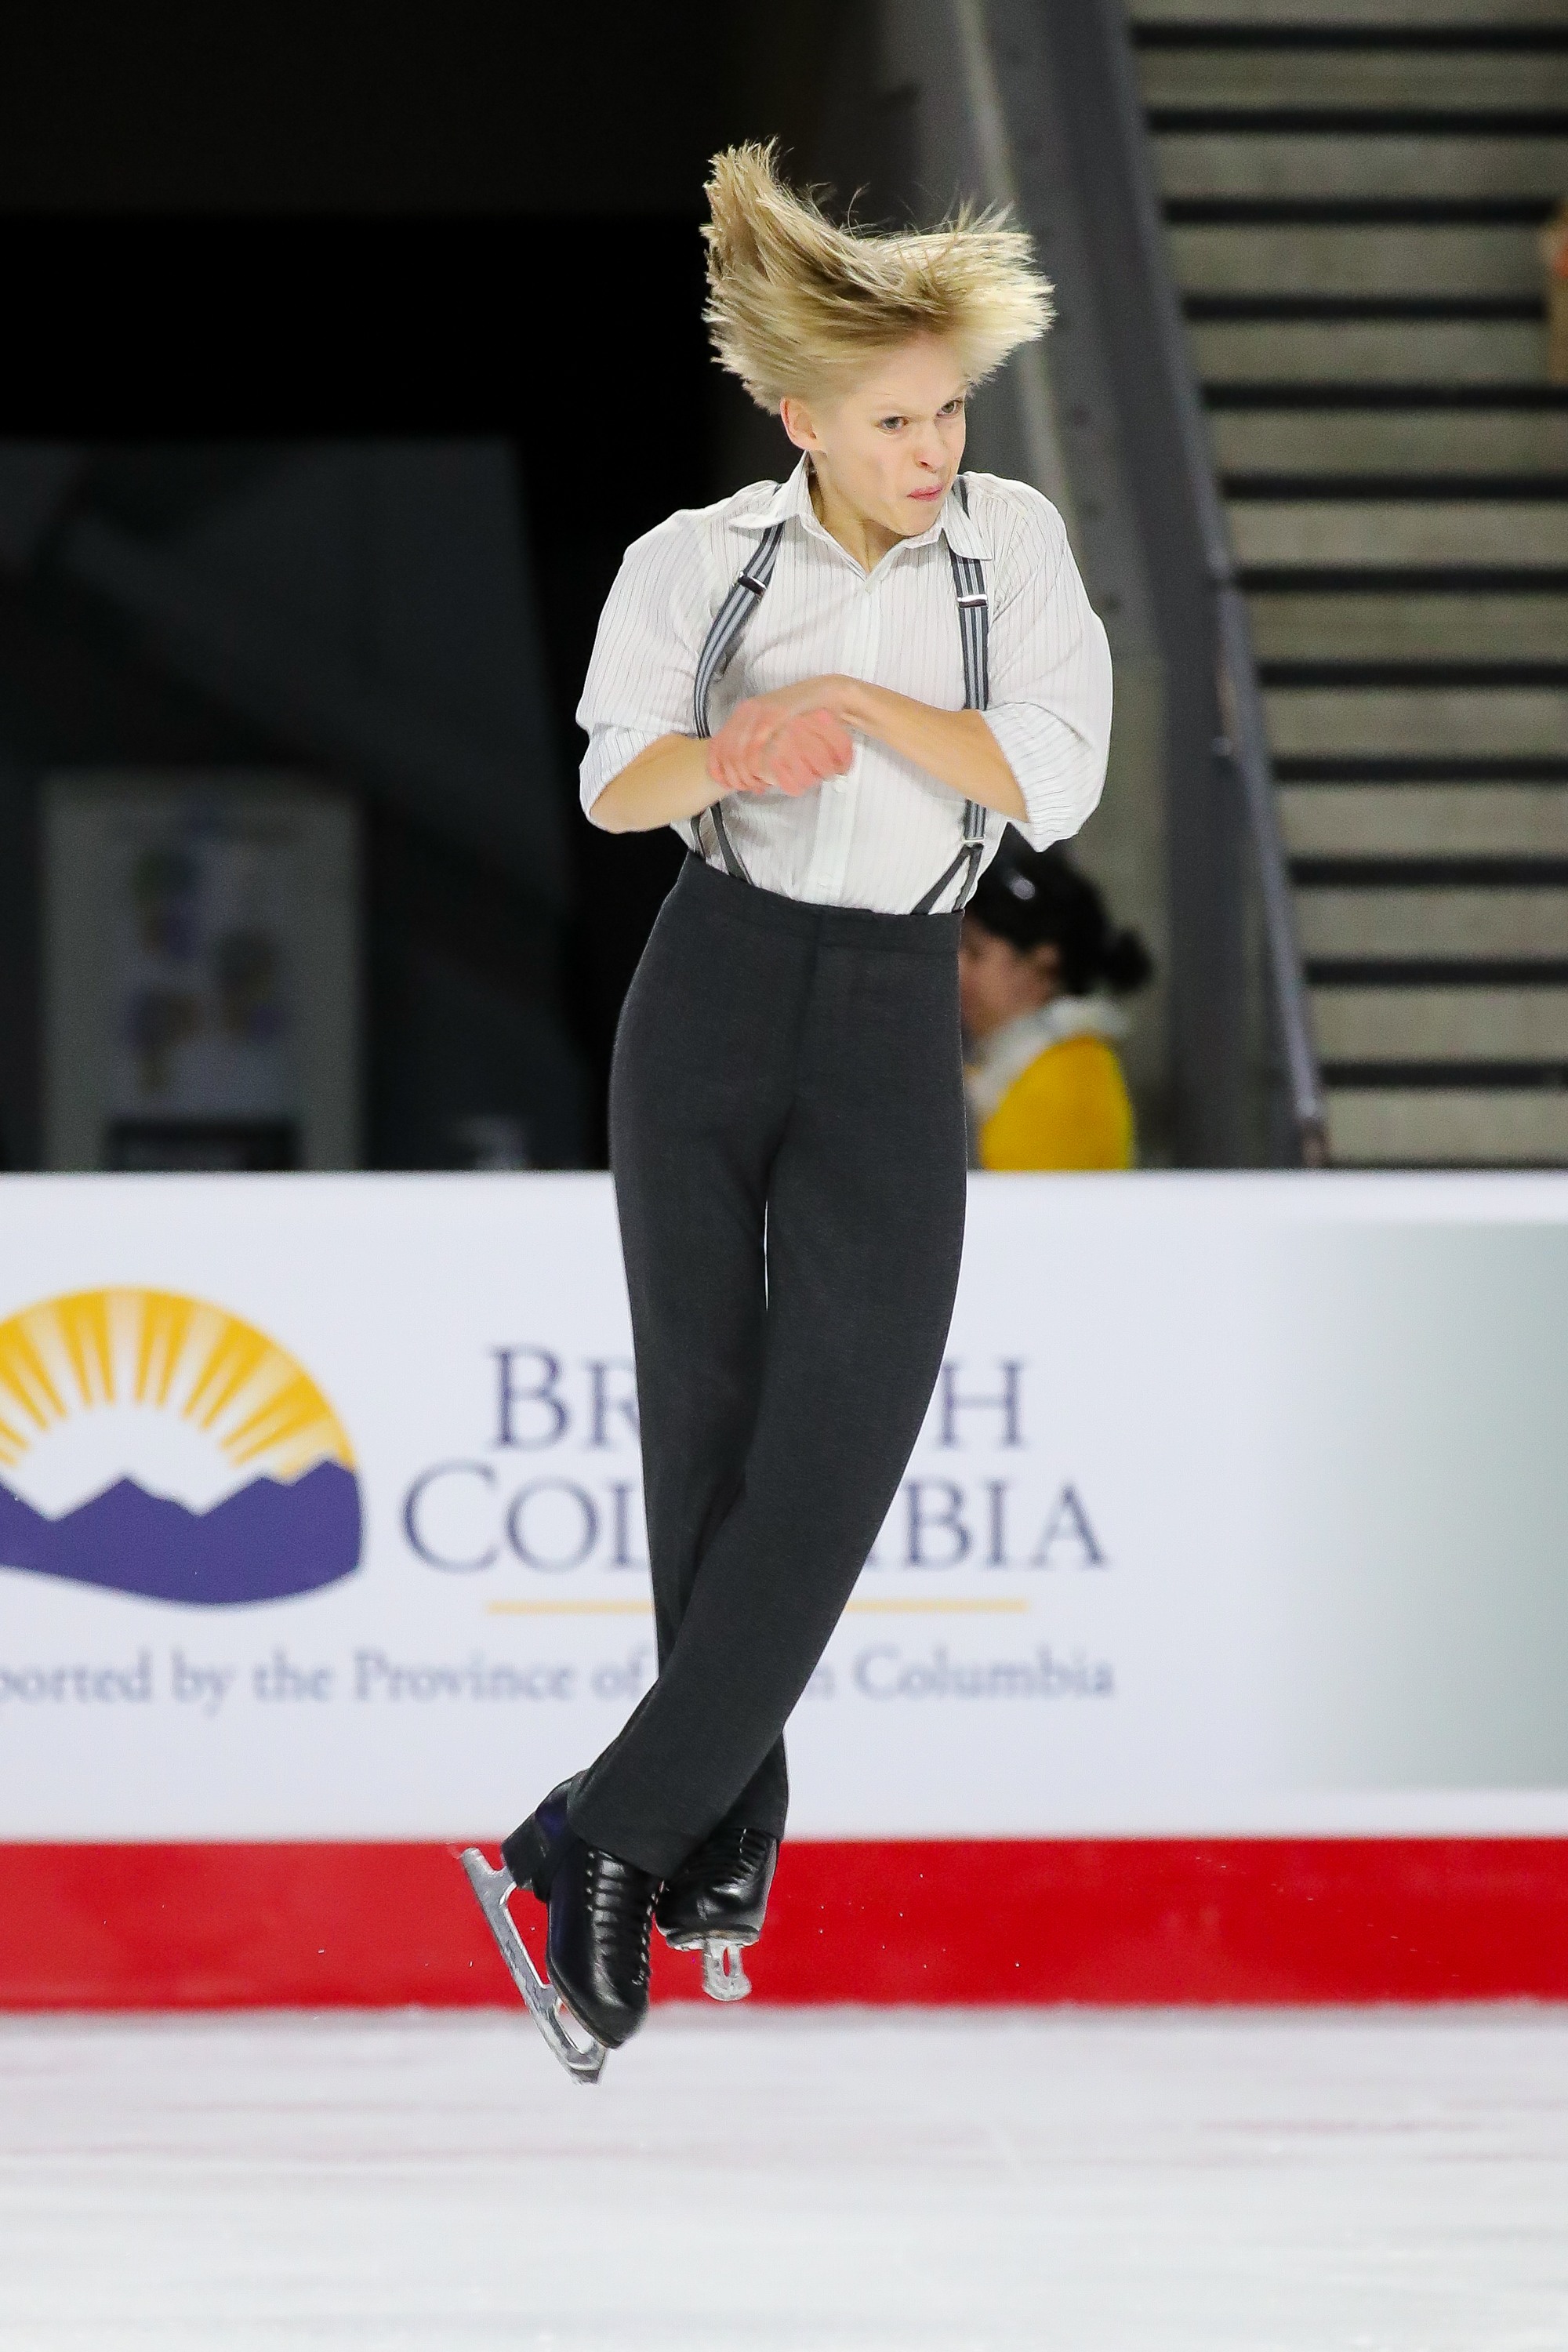 Canadian quad prodigy Stephen Gogolev, 13,competed as a senior at nationals this season. (Skate Canada / Greg Kolz)